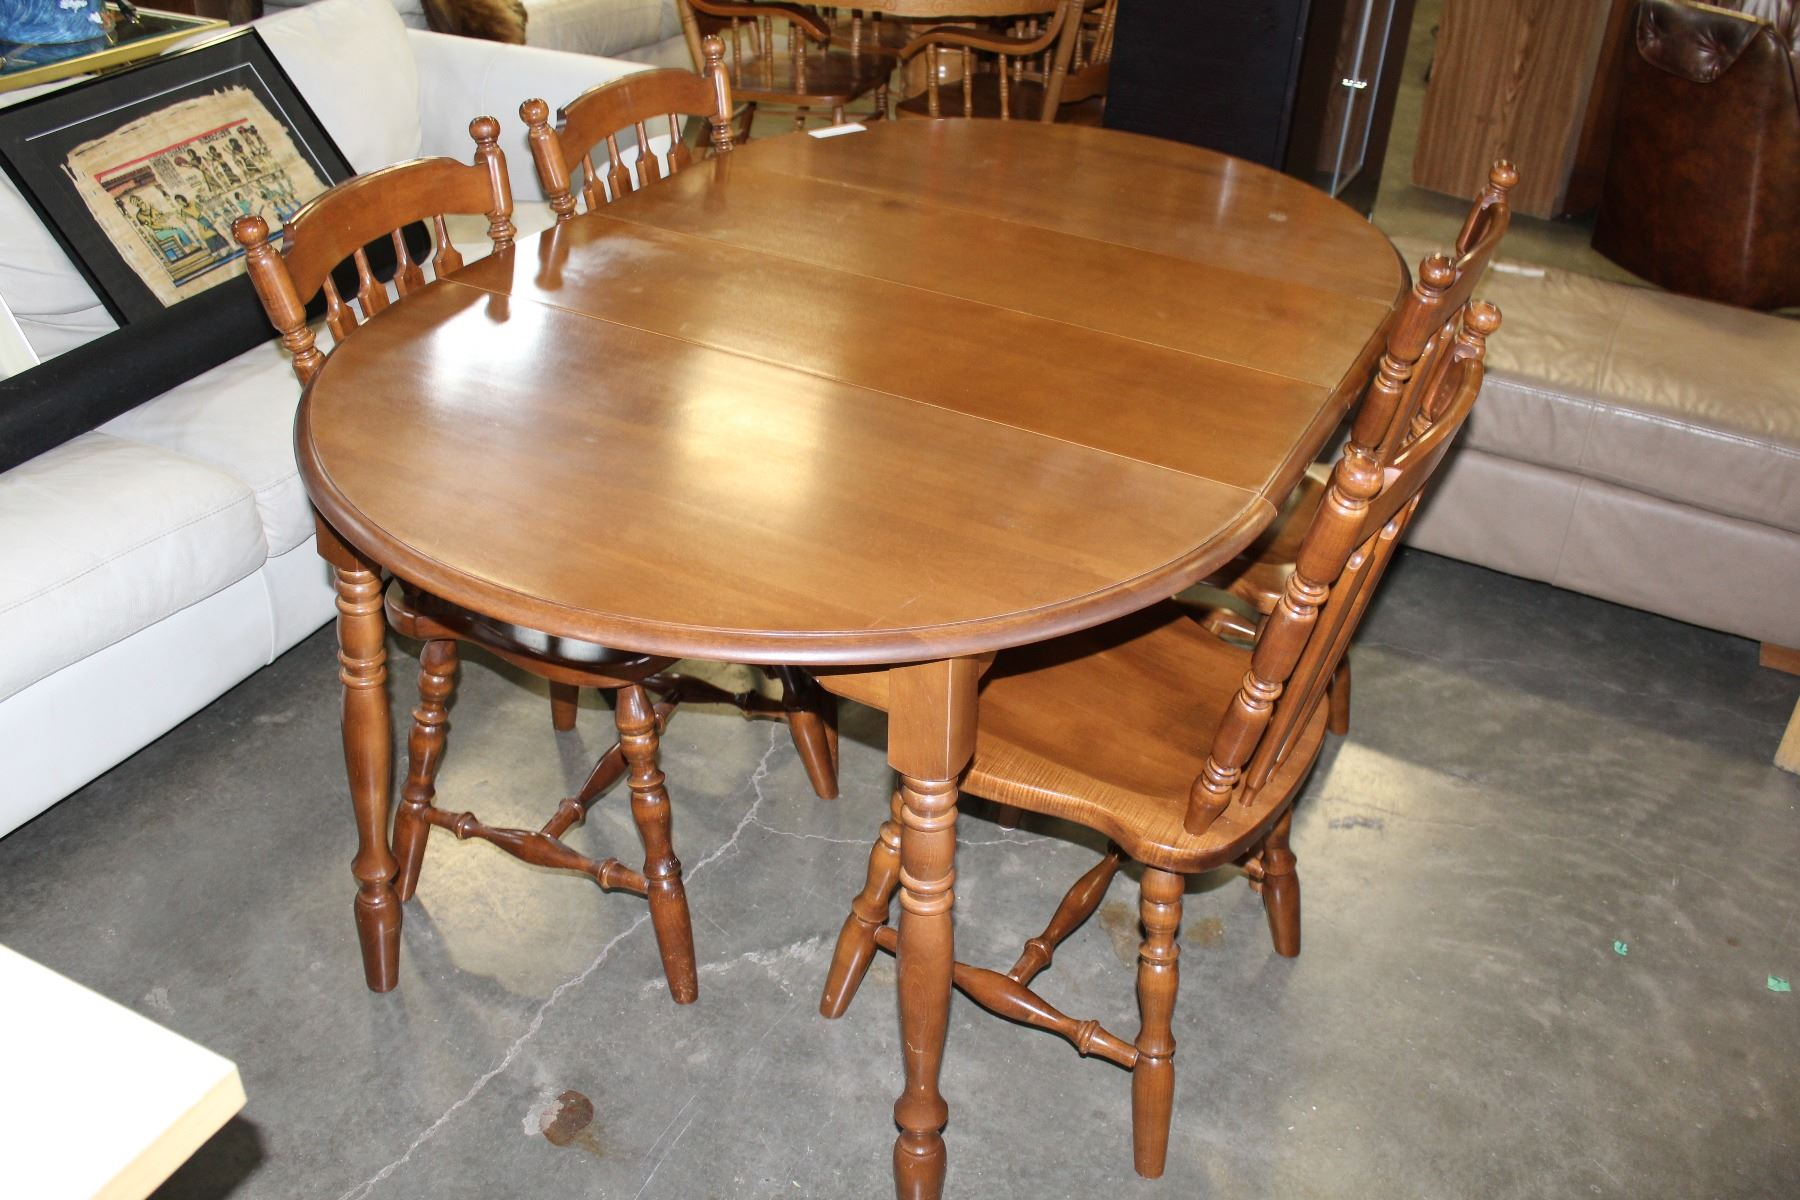 ... Image 2 : ROUND MAPLE DINING TABLE AND FOUR CHAIRS